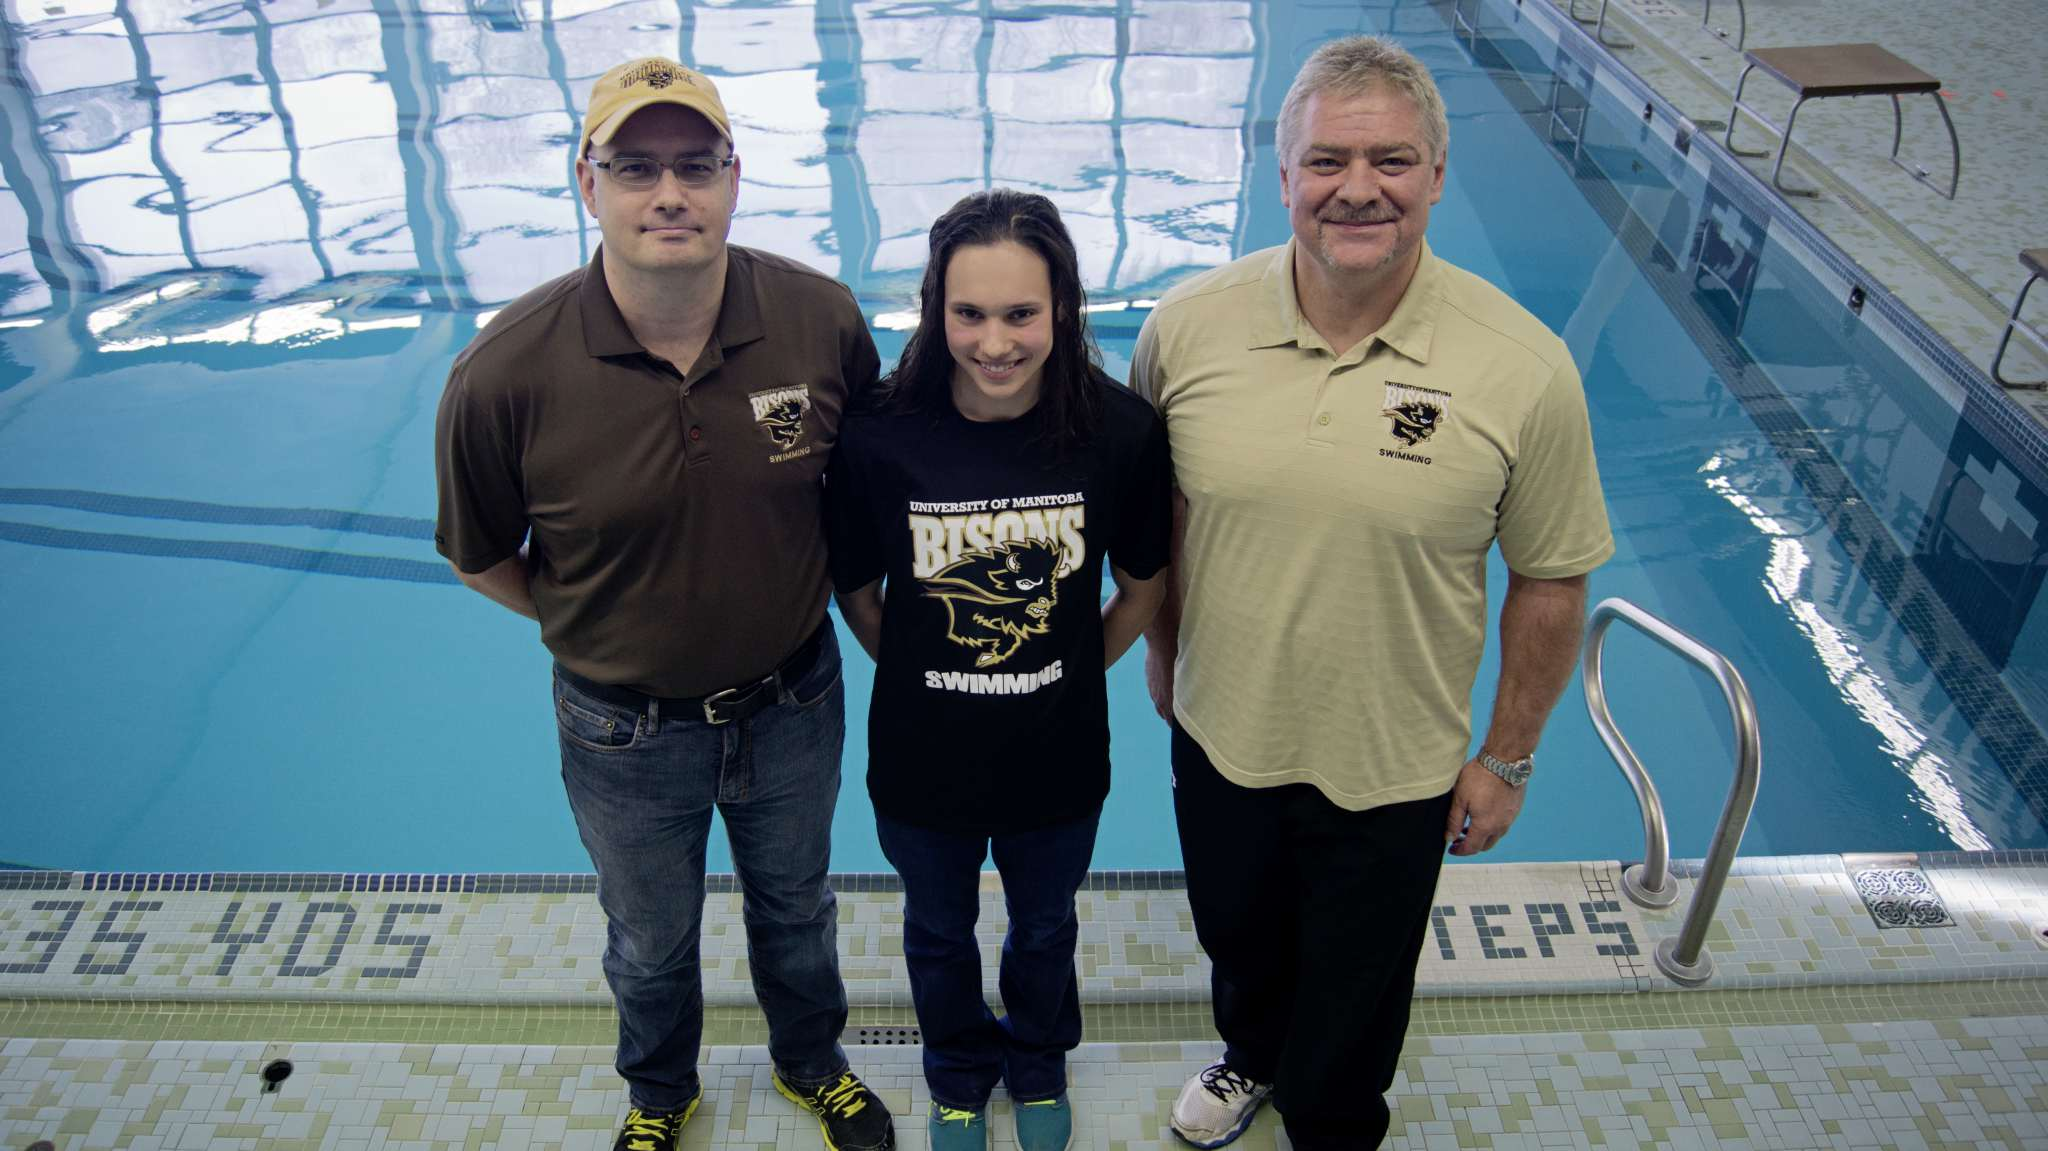 Kelsey Wog, centre, has committed to swim with the University of Manitoba Bisons in the 2016-2017 season. She is pictured with her coaches Craig McCormick, left, and Vlastimil Cerny.